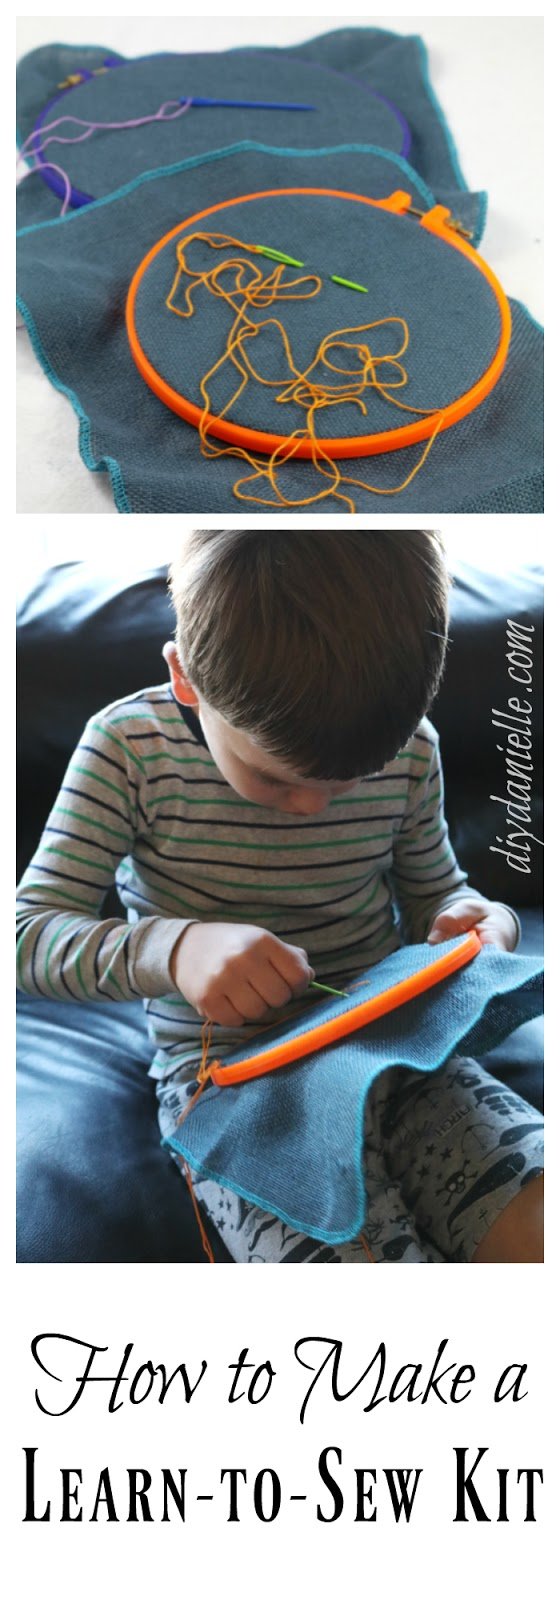 DIY Reusable Learn to Sew Kit for Kids